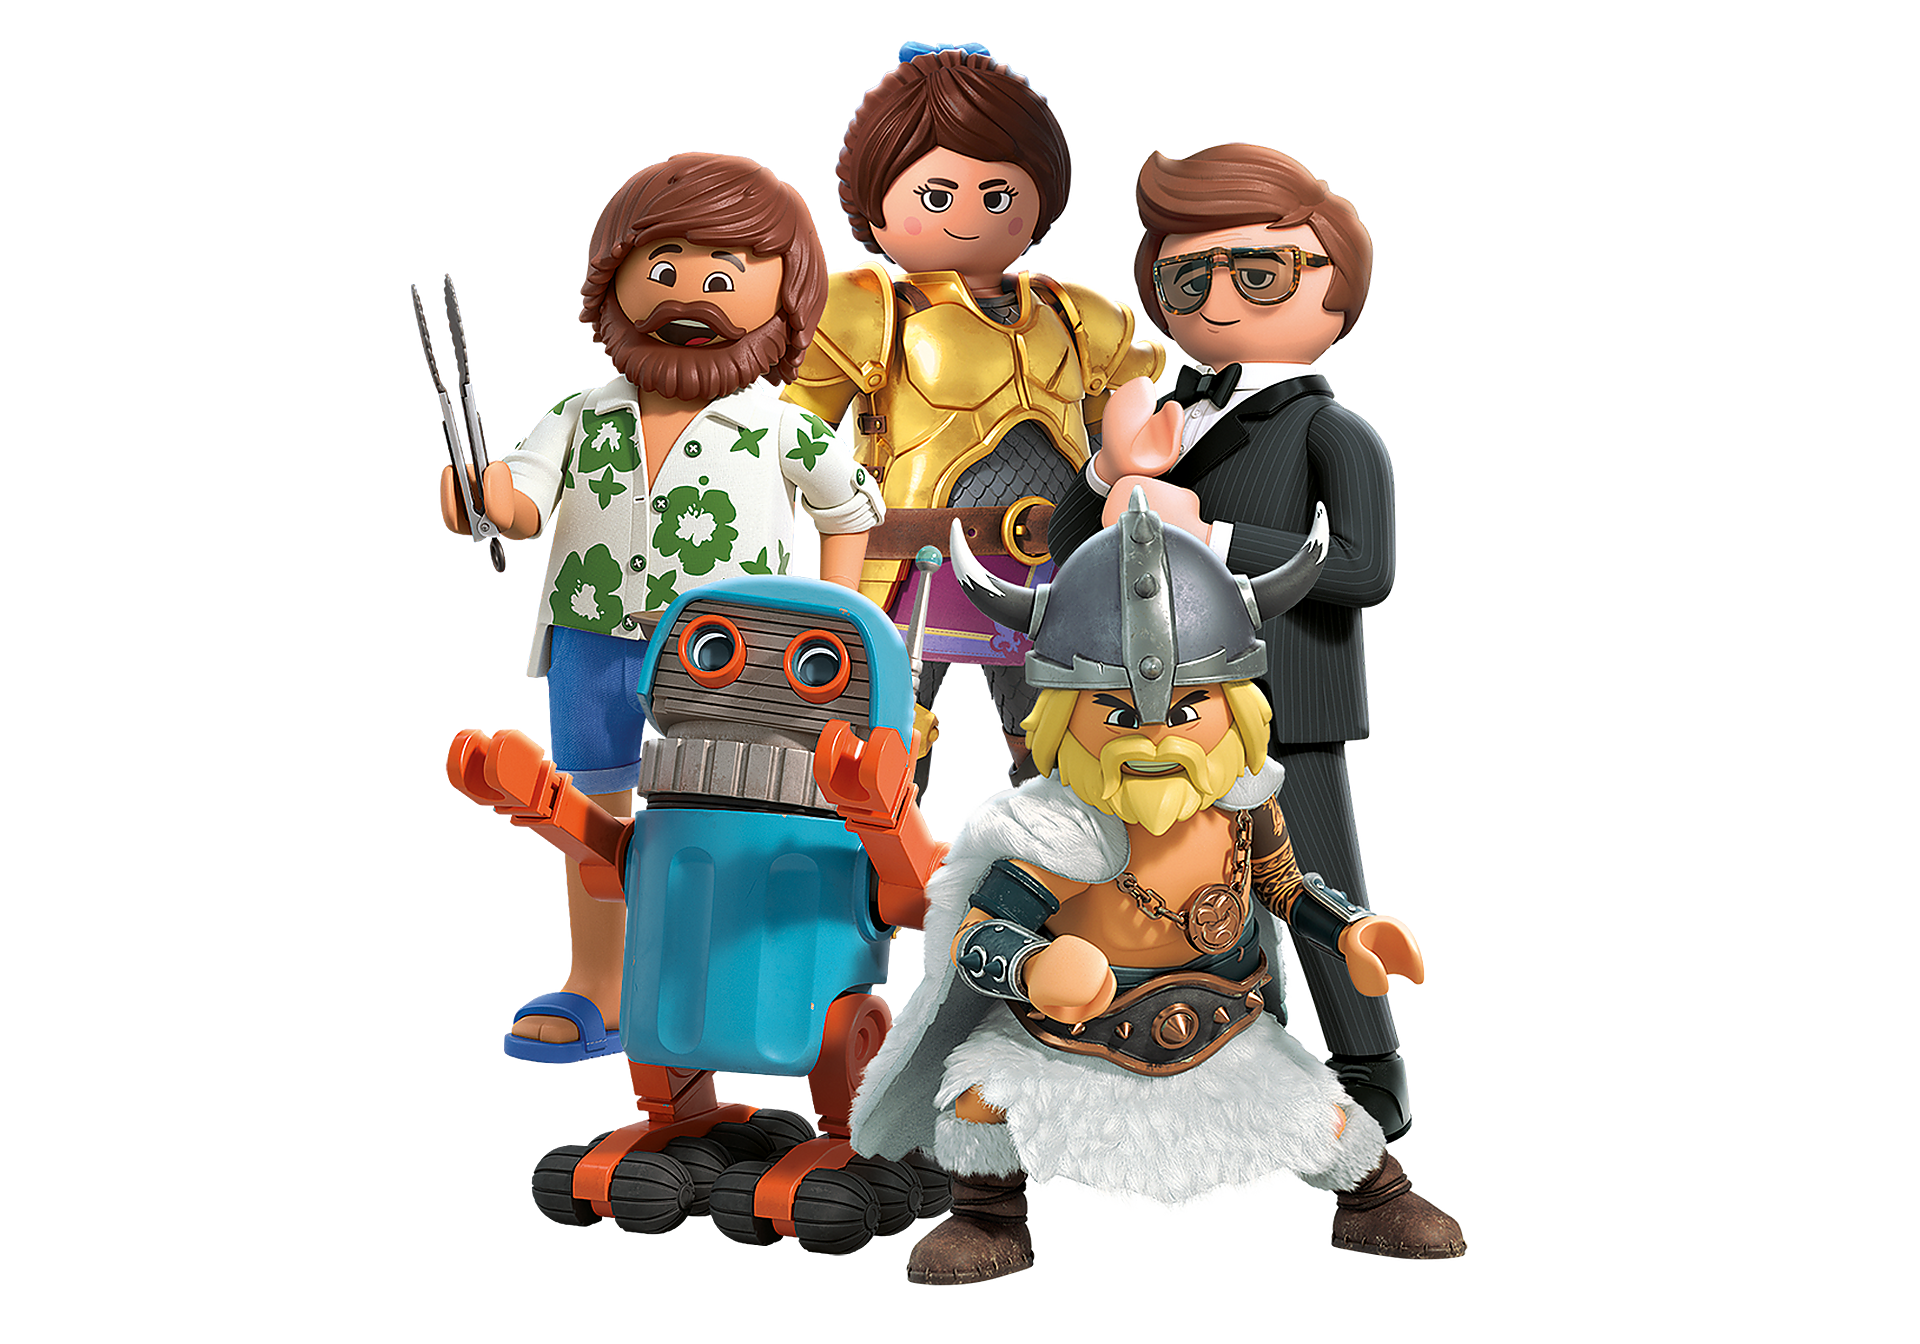 http://media.playmobil.com/i/playmobil/70069_product_detail/PLAYMOBIL: THE MOVIE Figuras (Serie 1)